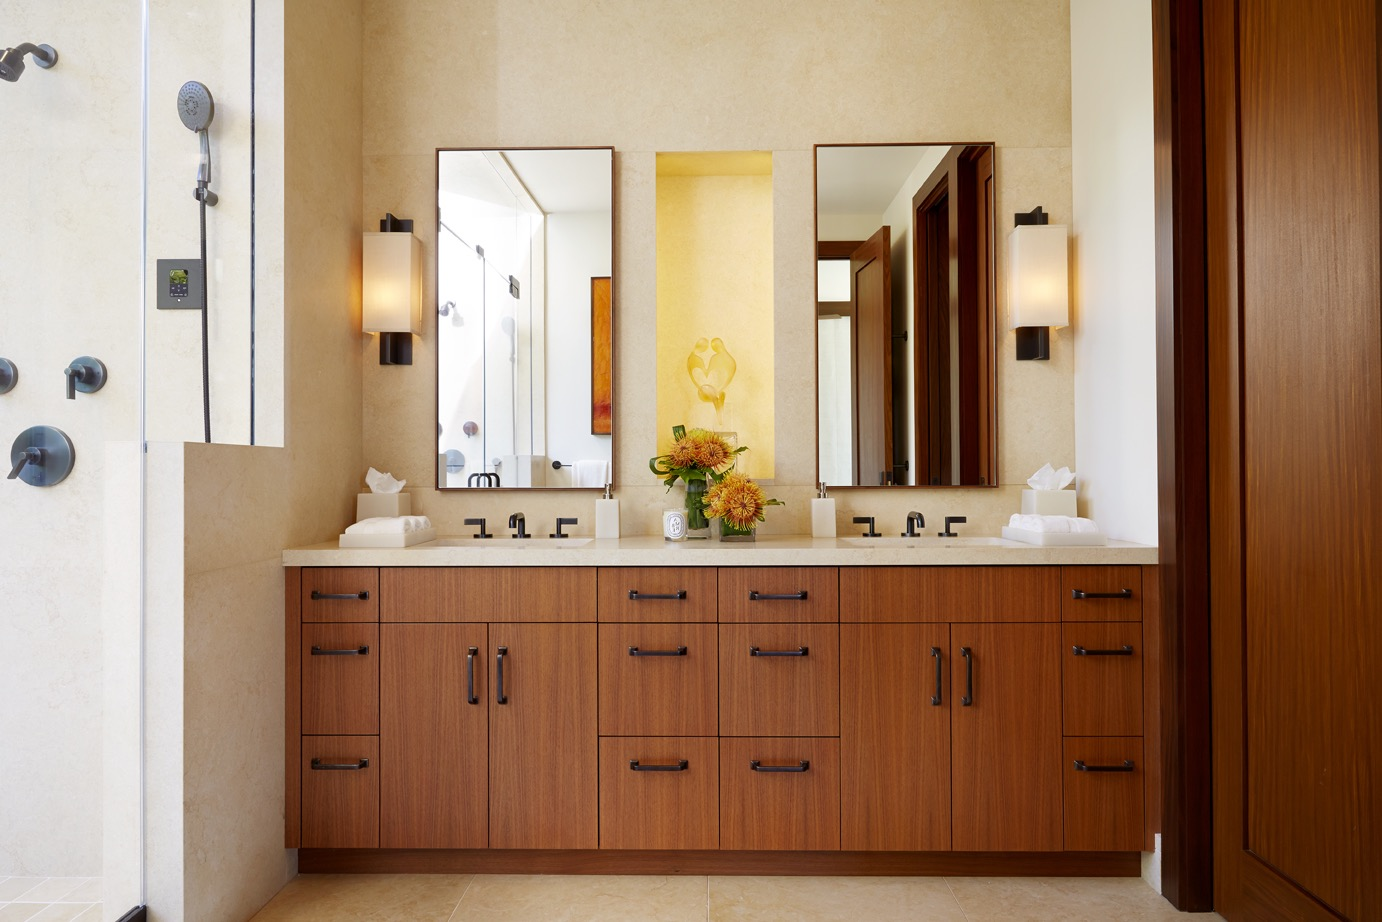 Contemporary Bathroom Double Vanity Features Ample Storage Space (Image 4 of 20)